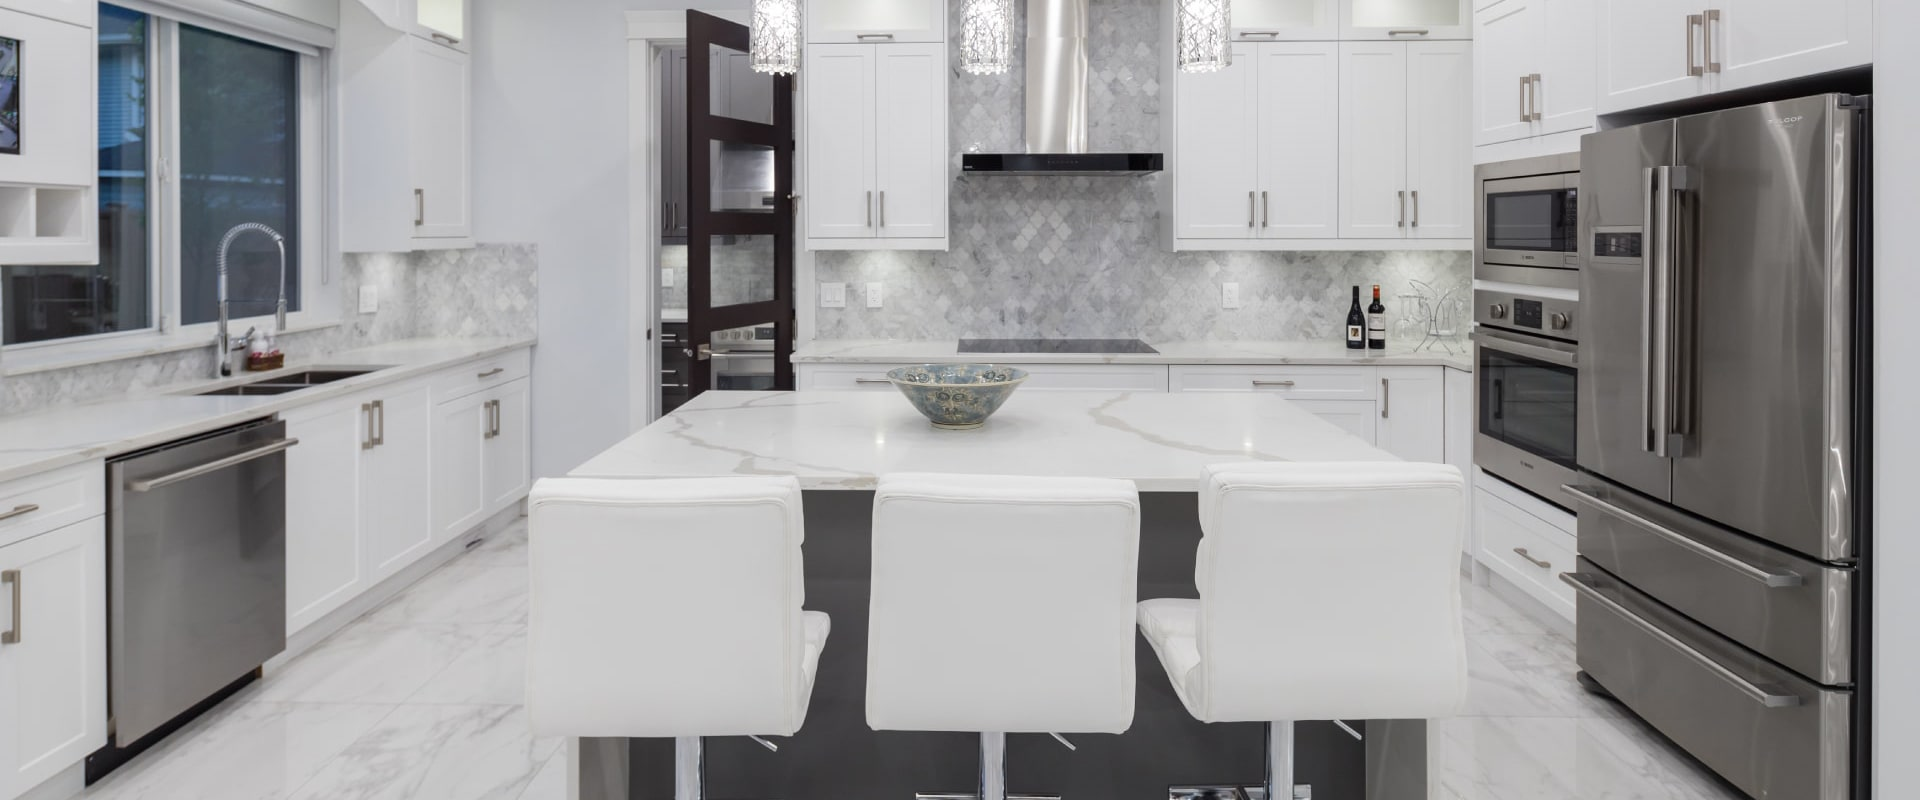 McNair Project - Kitchen